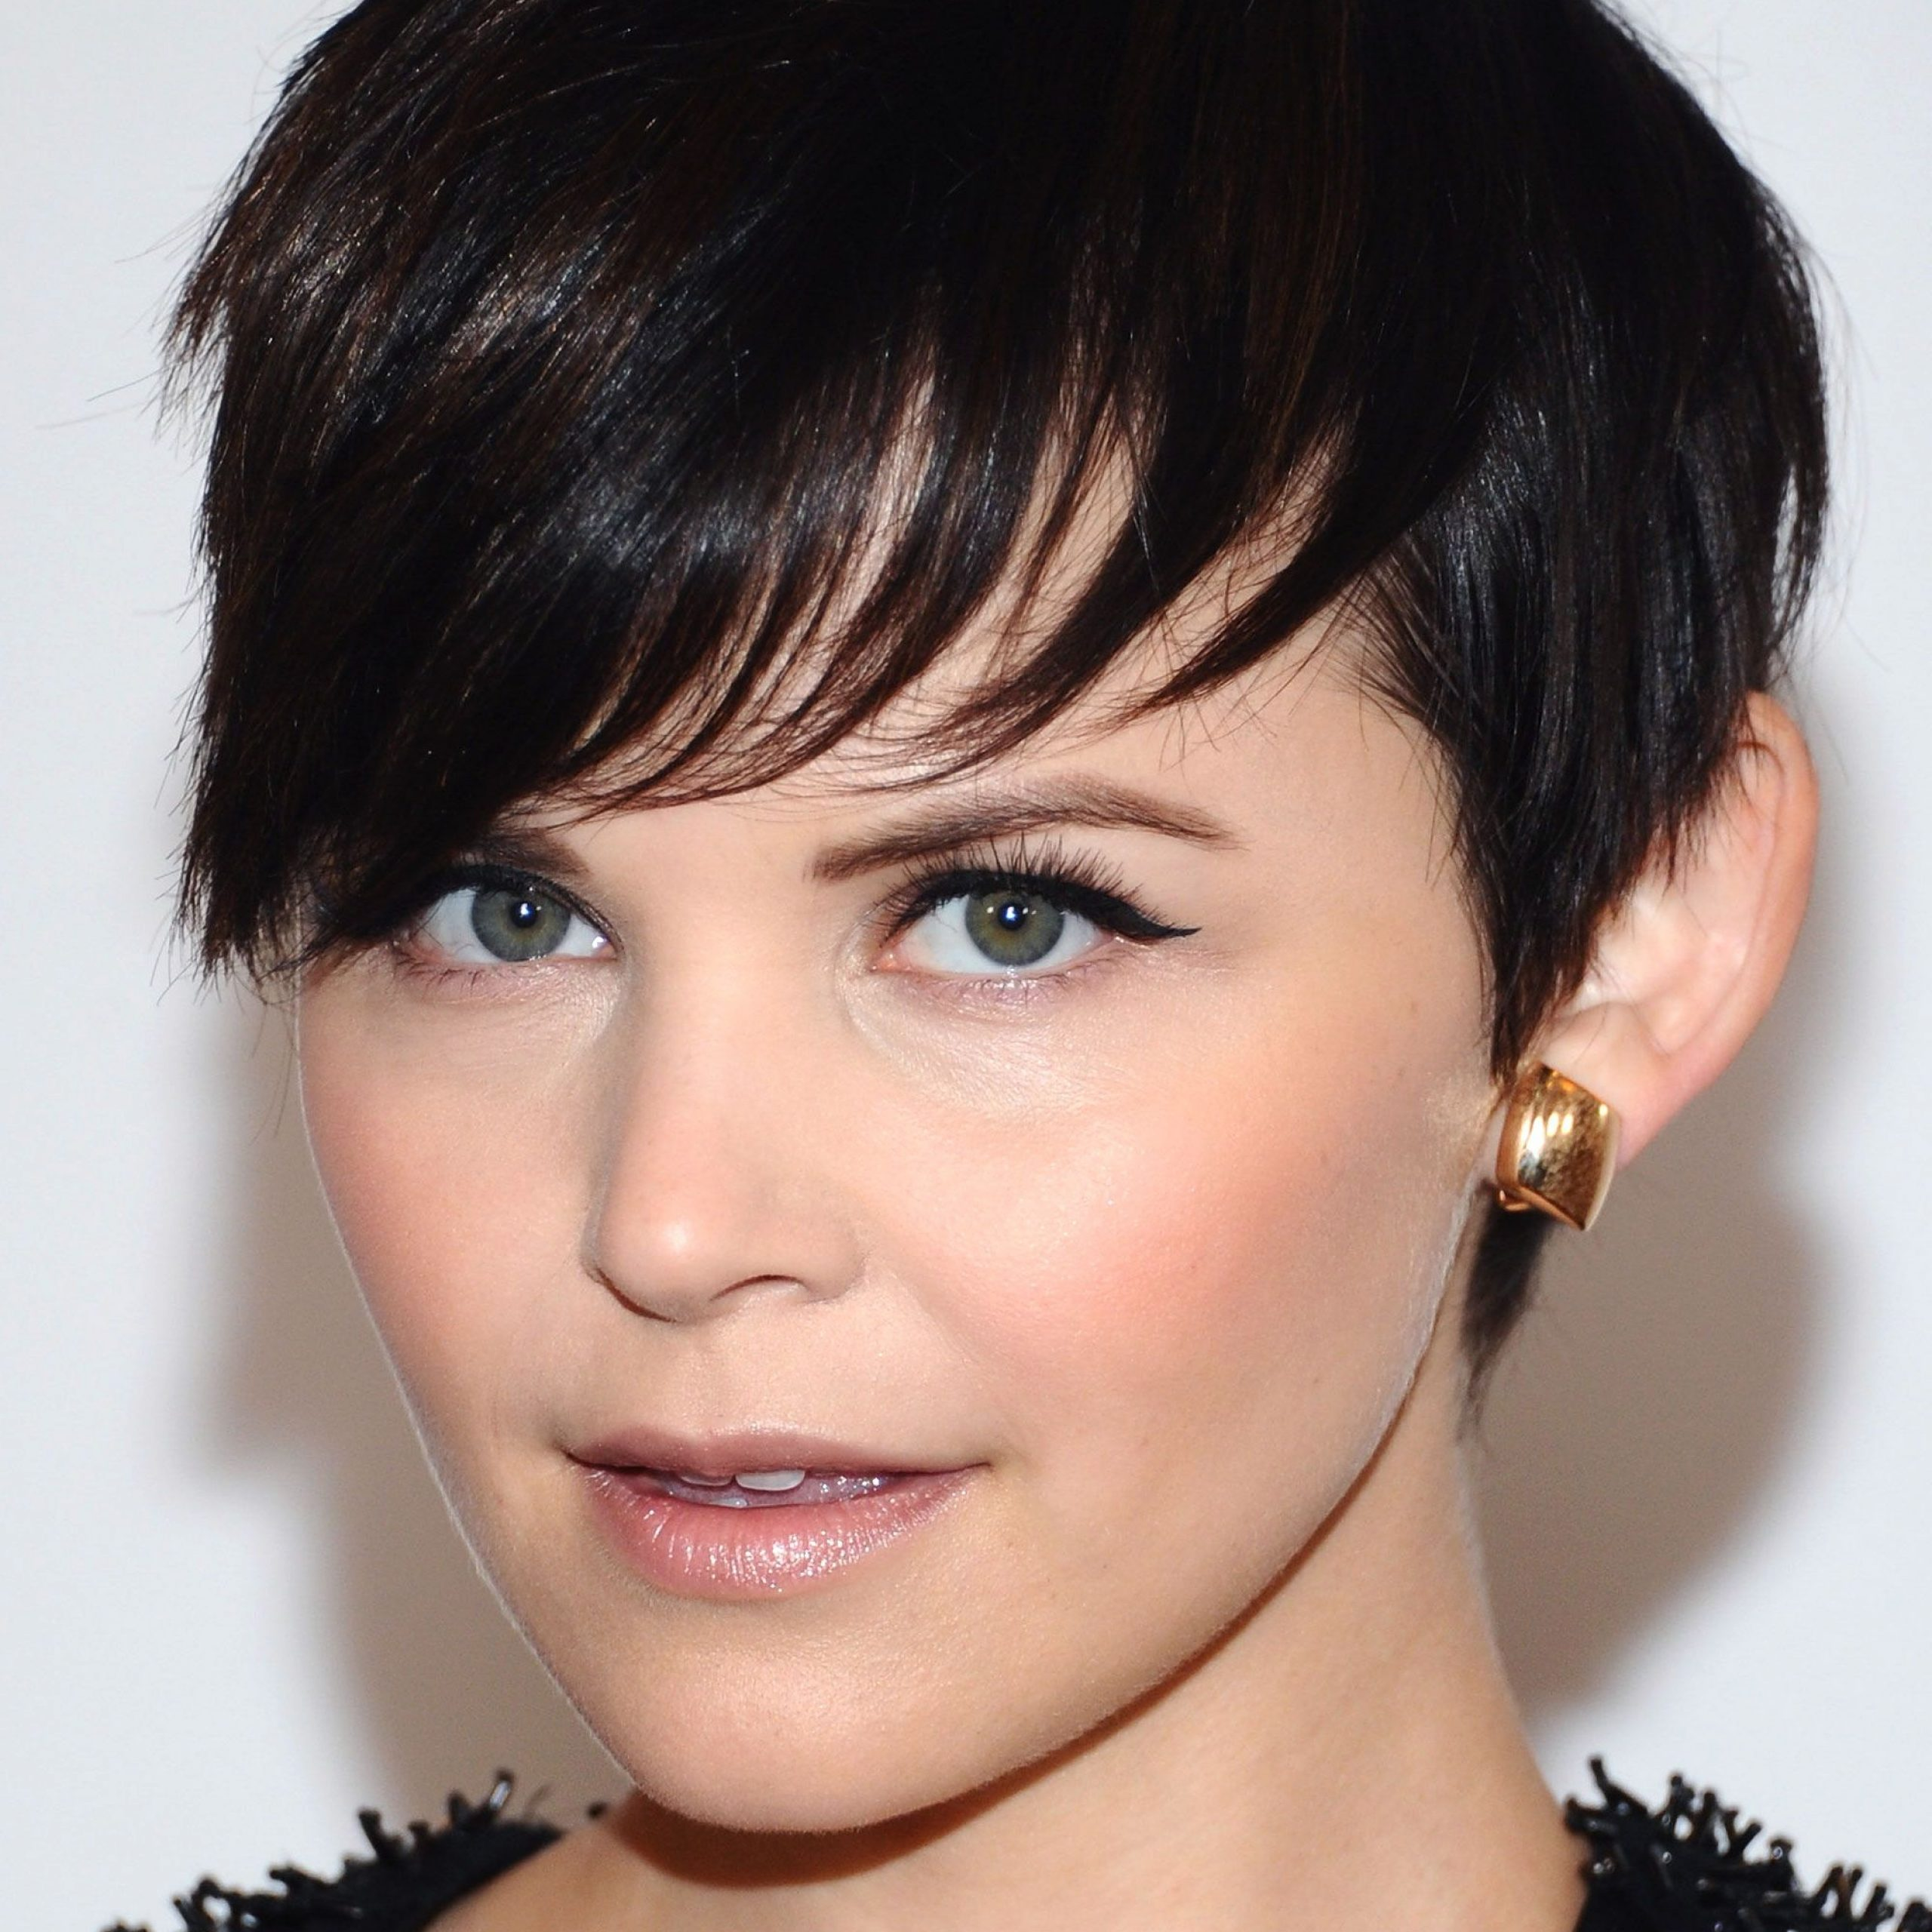 60+ Pixie Cuts We Love For 2020 – Short Pixie Hairstyles For Popular Edgy & Chic Short Curls Pixie Haircuts (View 6 of 20)